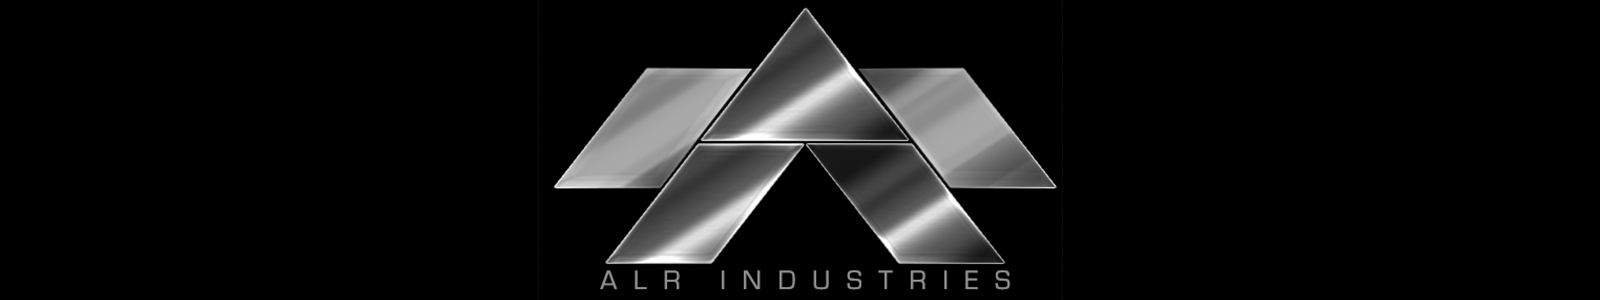 Brands - ALR Industries